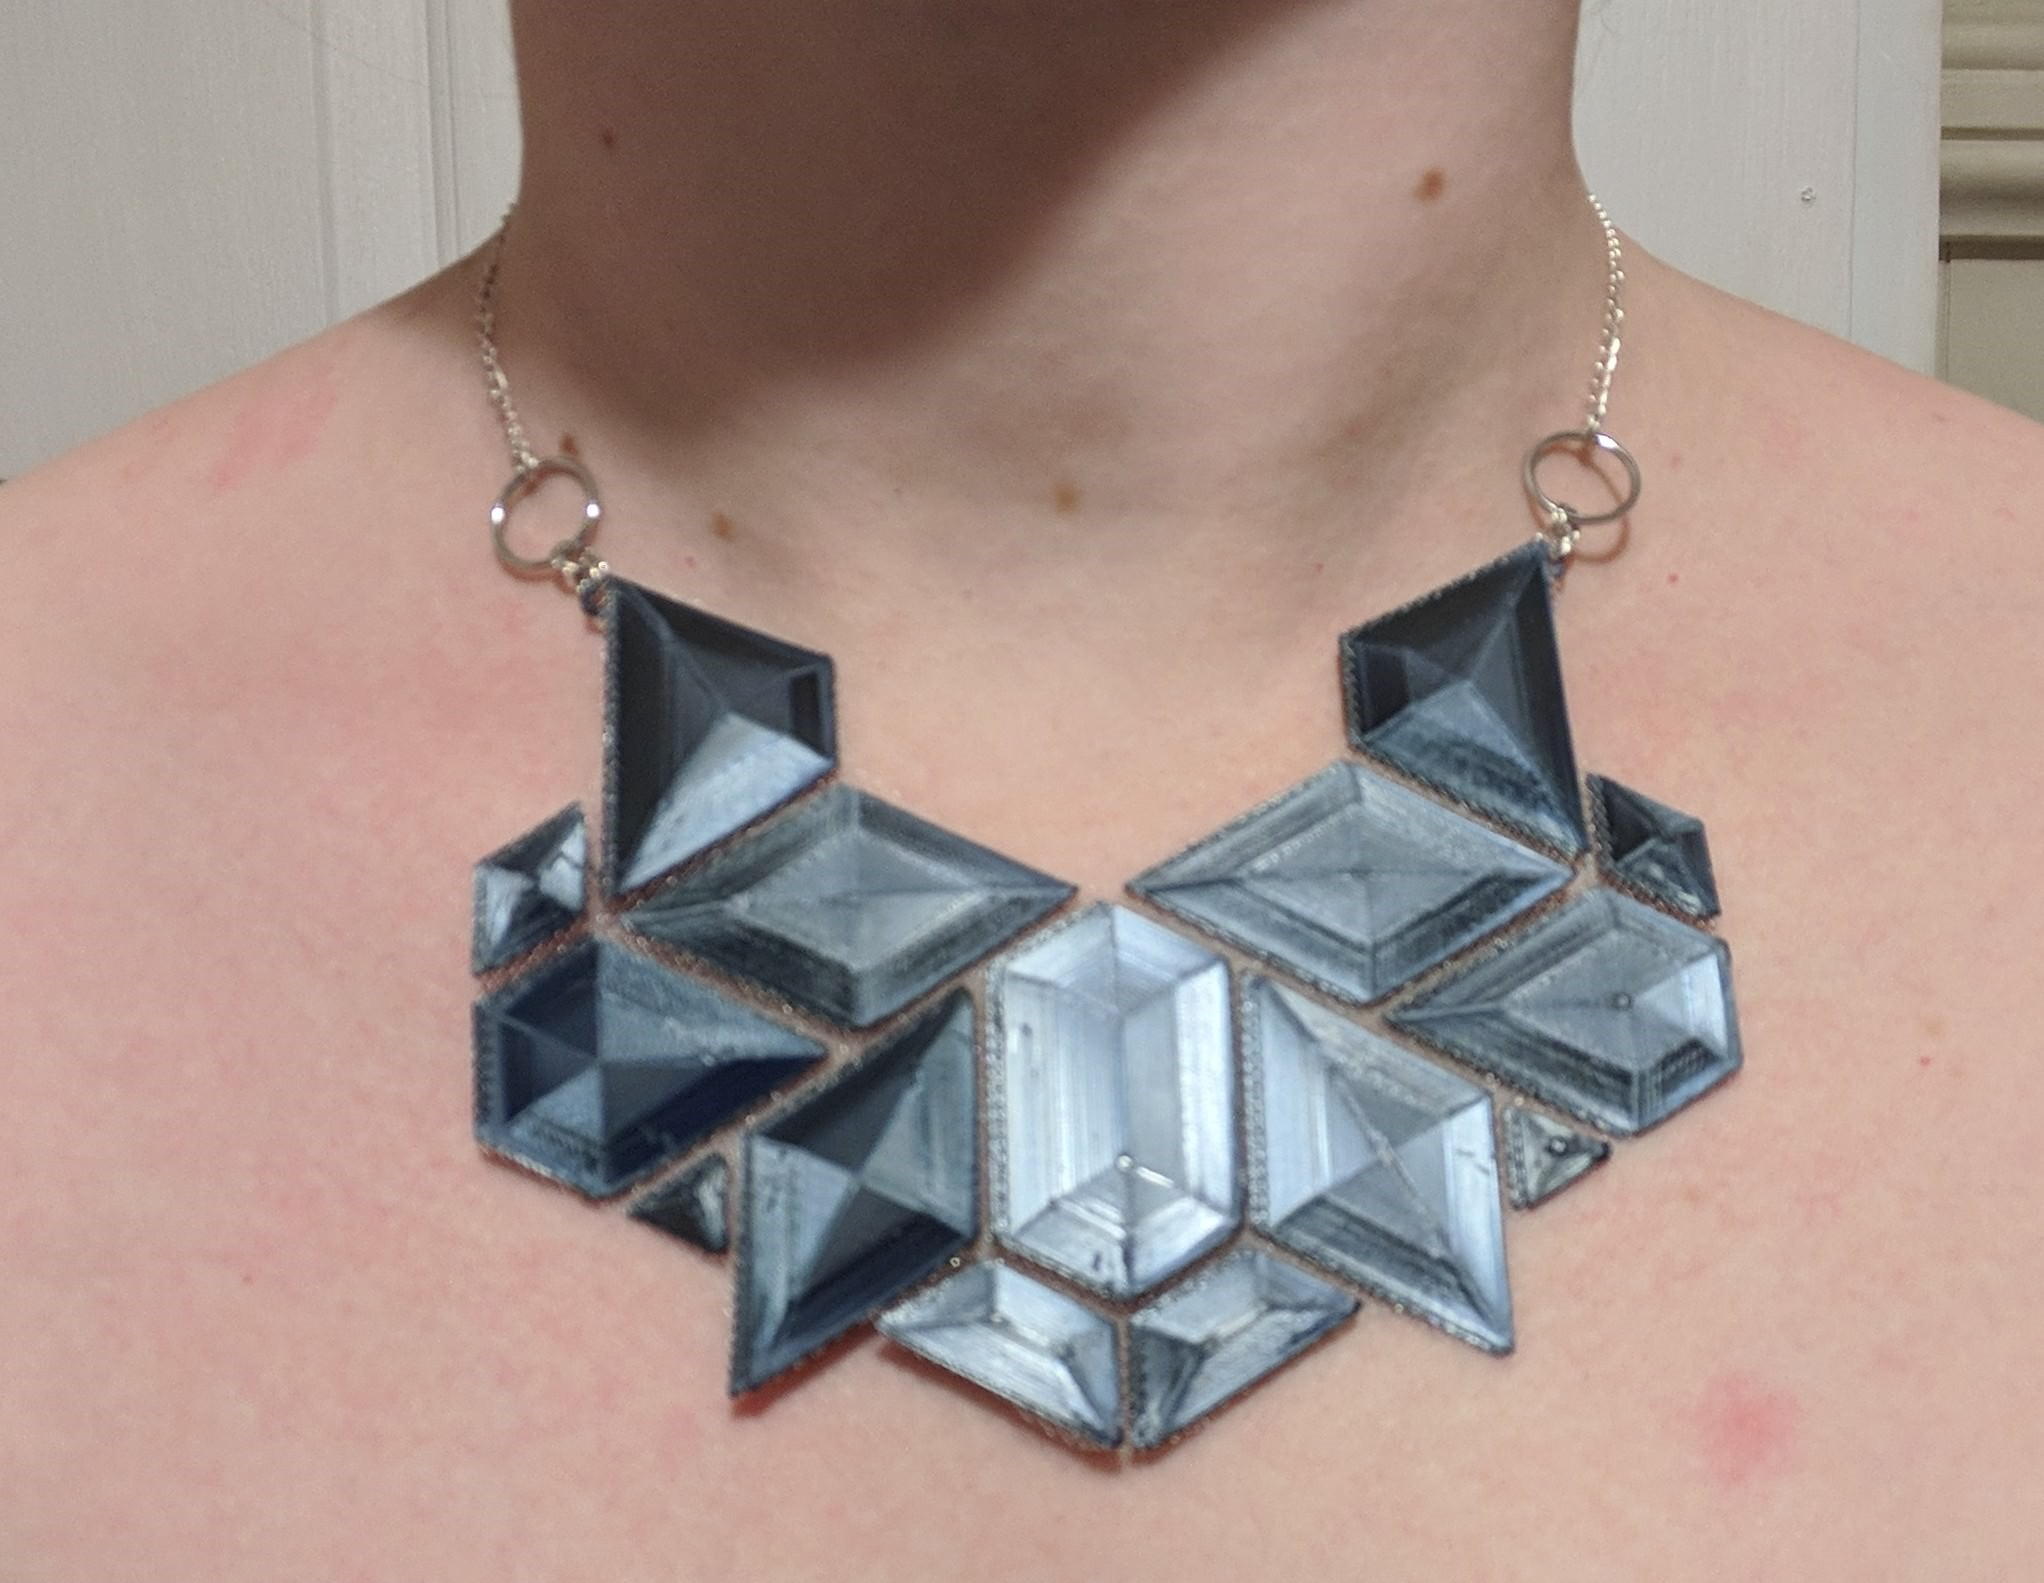 Necklace 3d printed onto fabric